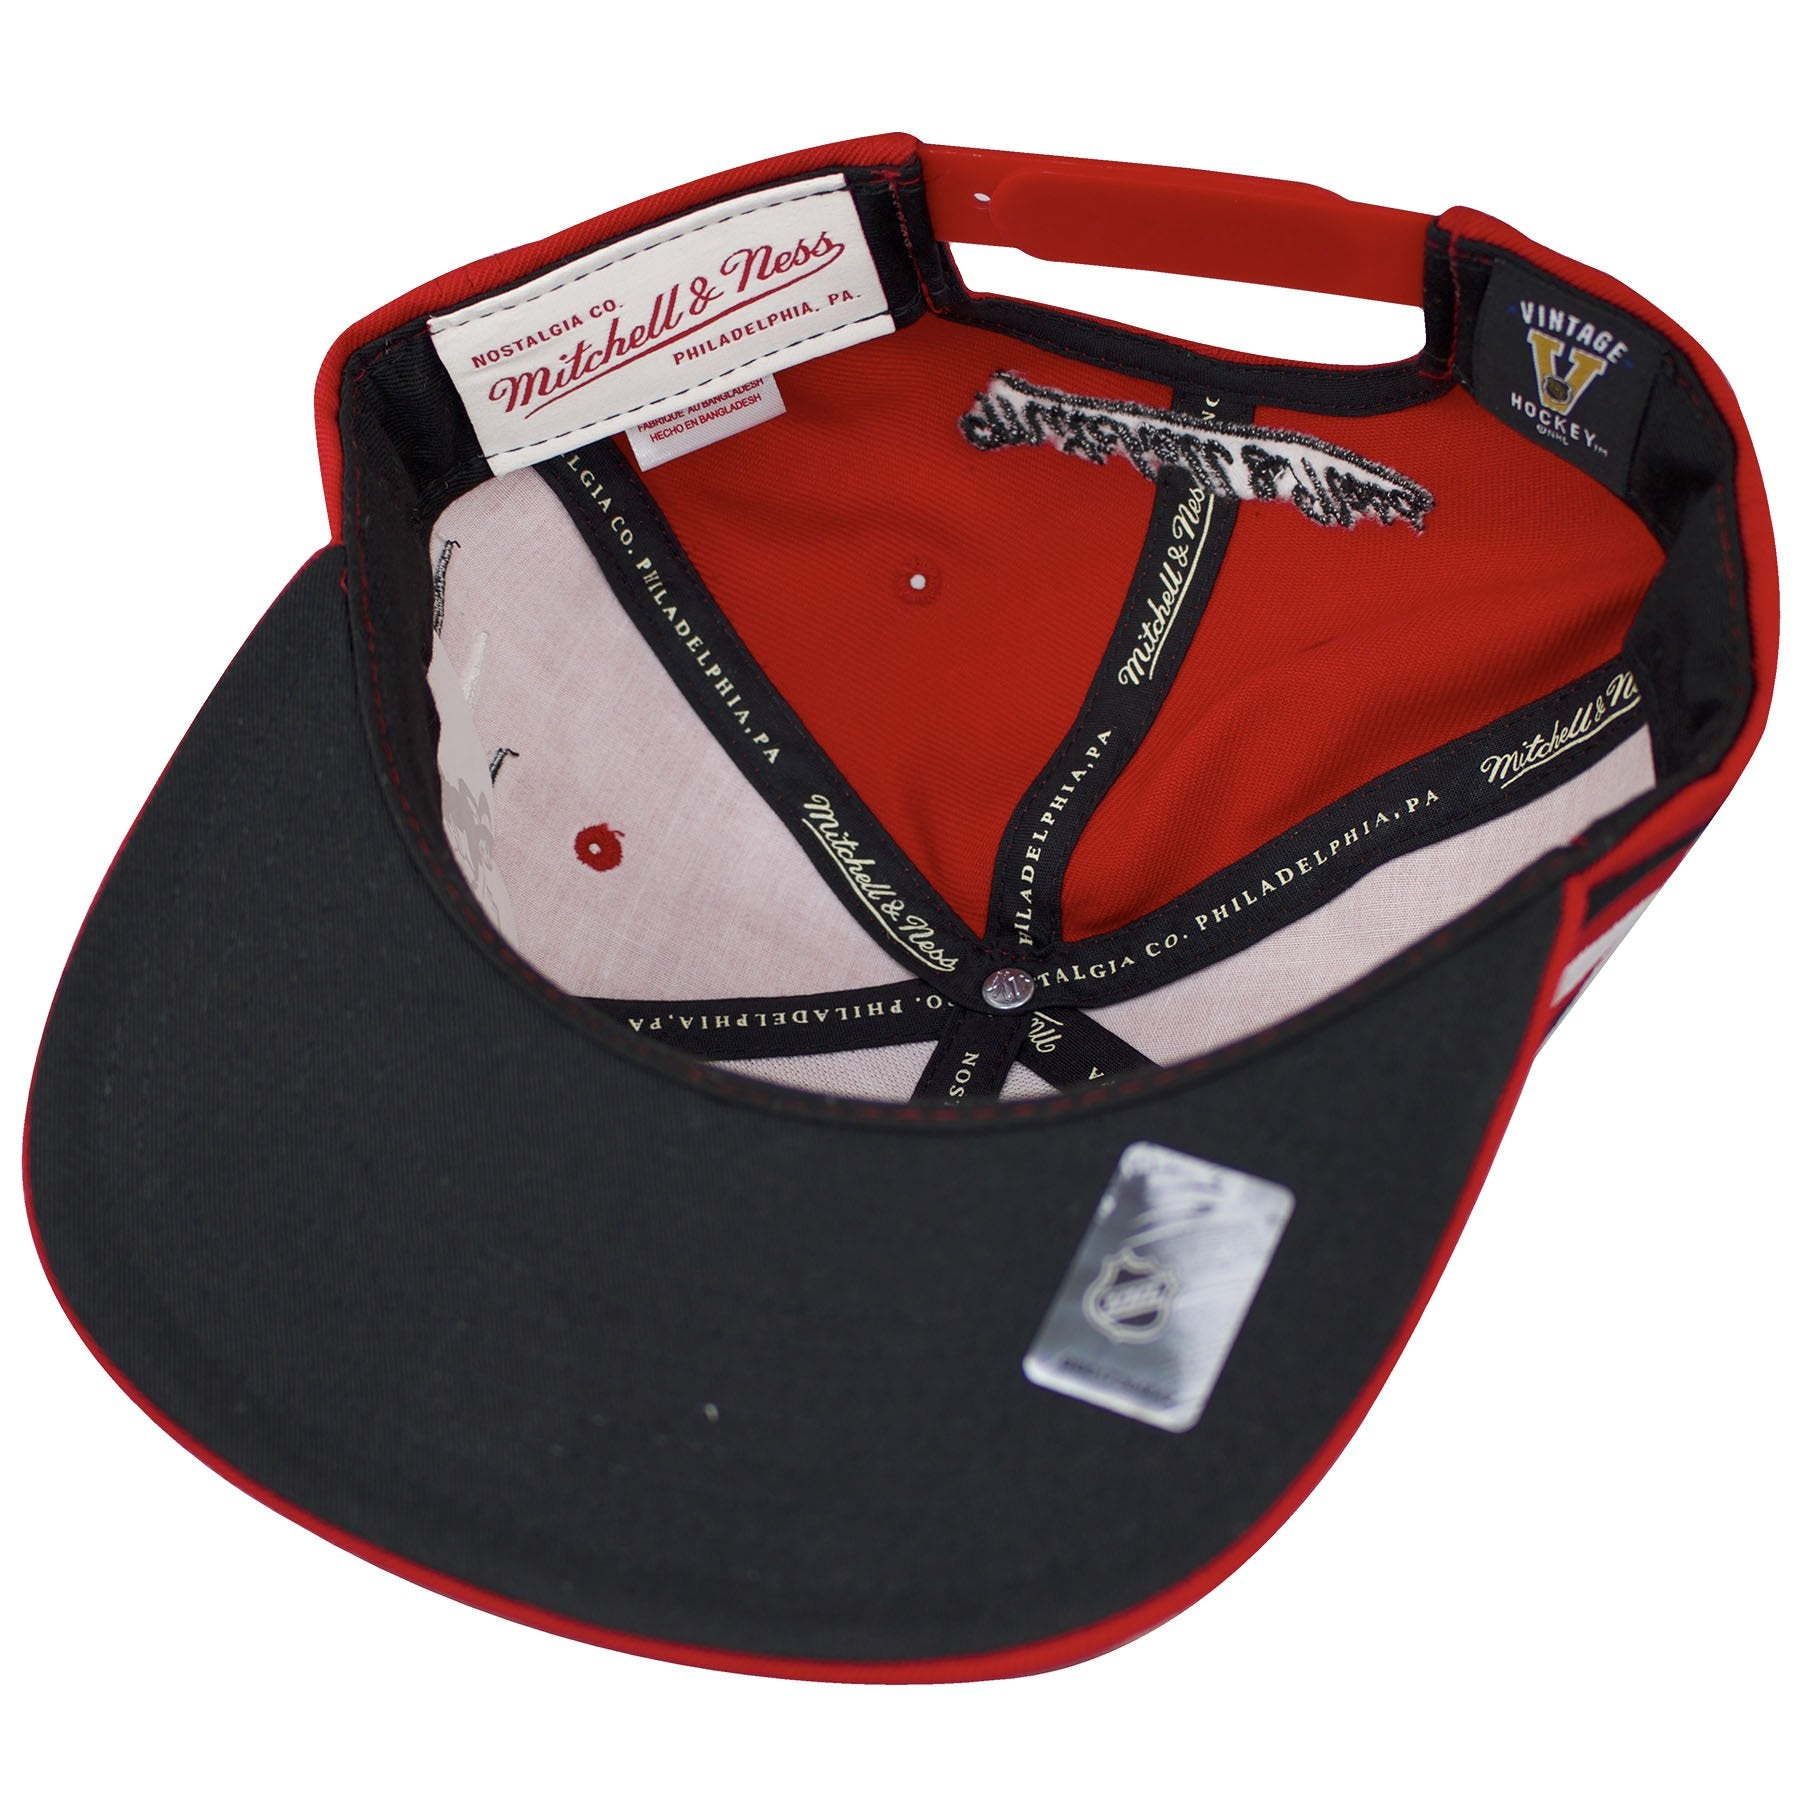 0867afe34aaac3 coupon the under brim of the chicago blackhawks diamond spikes snapback hat  is blac 8ceb3 81e37